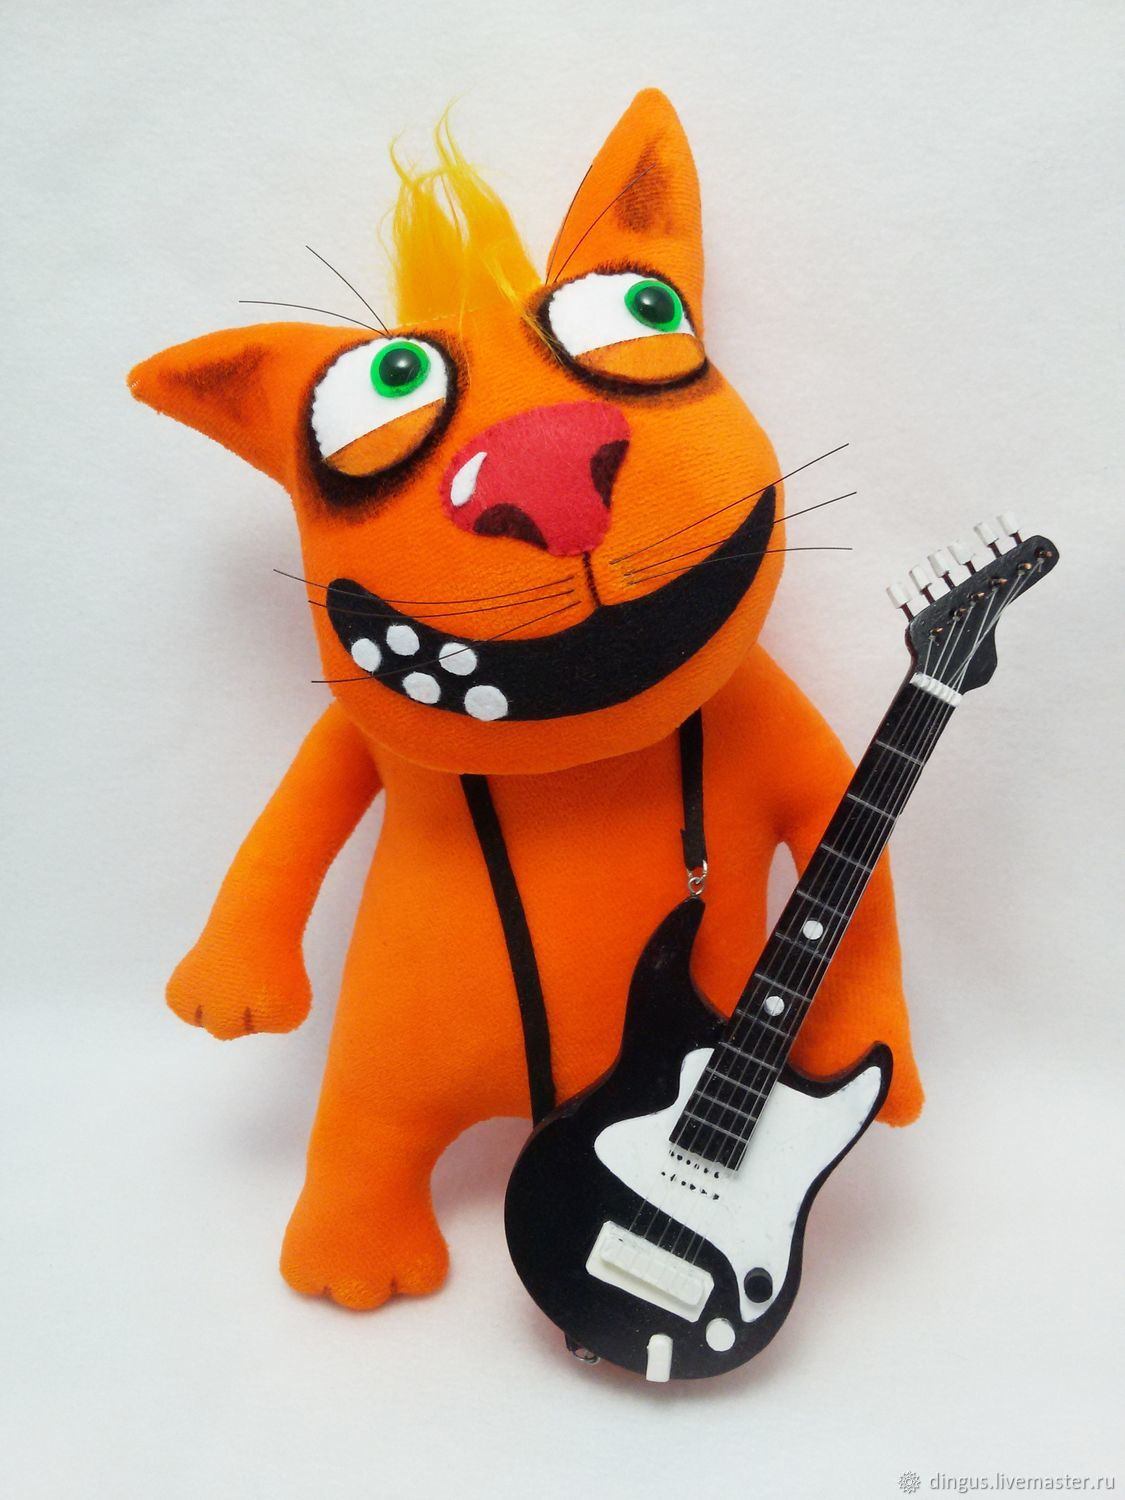 Soft toy plush red cat with rock star guitar, Stuffed Toys, Moscow,  Фото №1